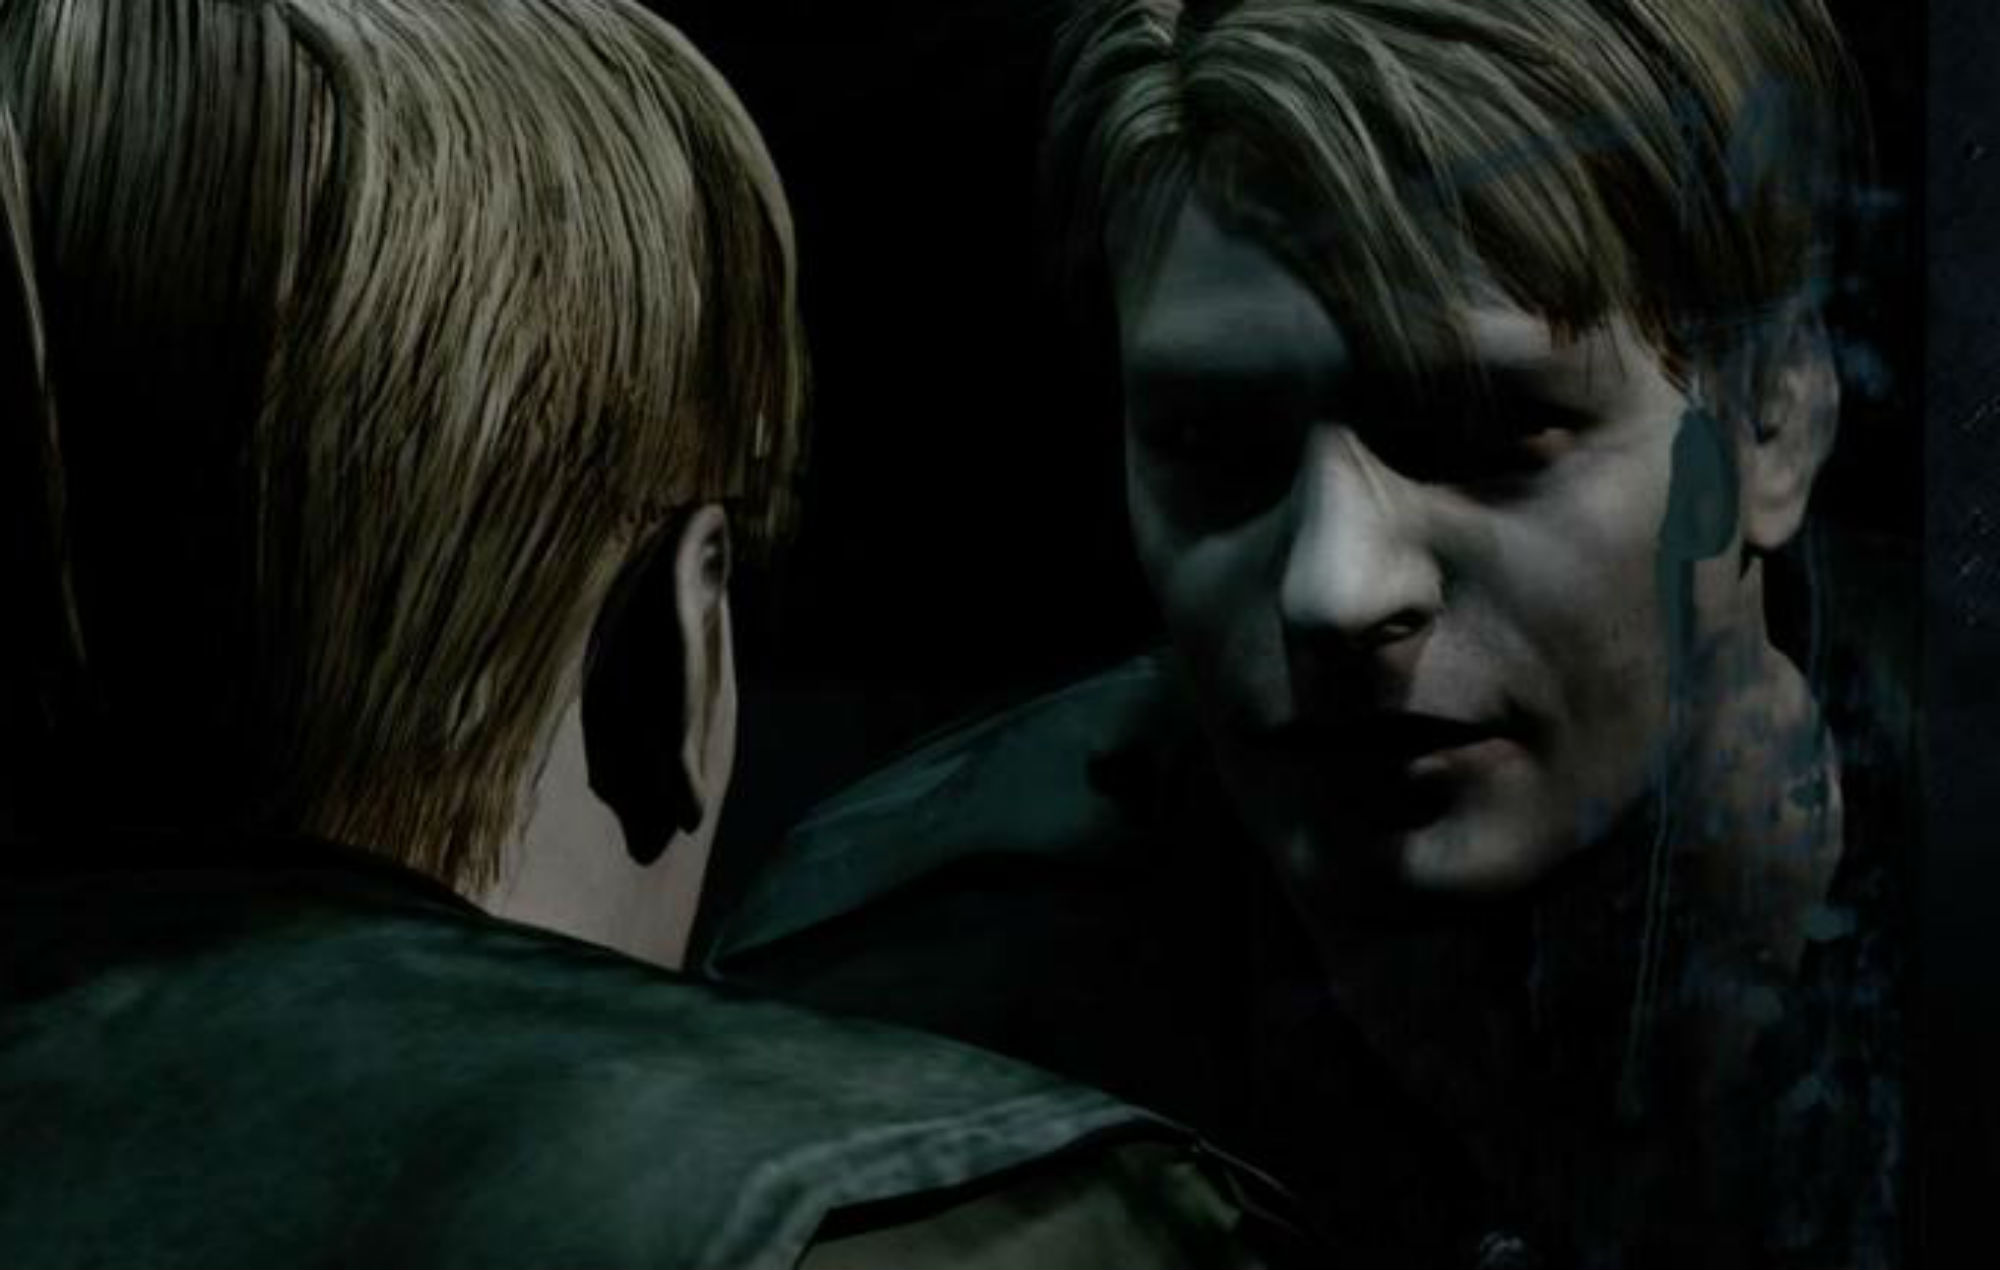 The creator of 'Silent Hill' presents the first details about the new upcoming game